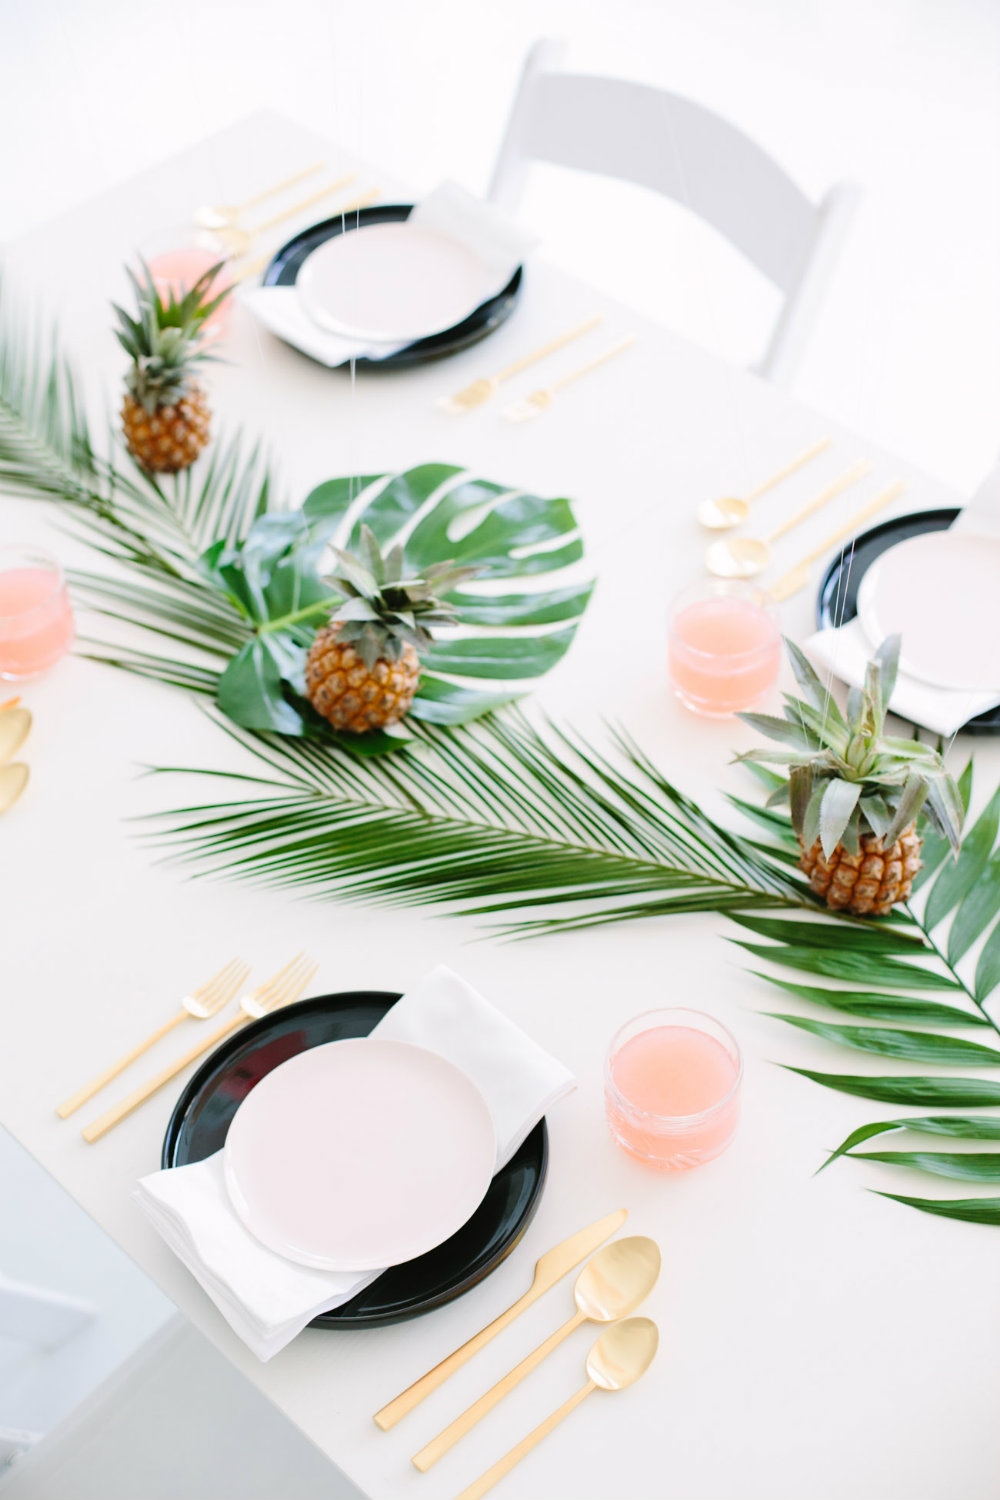 Stunning Summer Table Setting Ideas 05 summer table setting ideas Stunning Summer Table Setting Ideas Stunning Summer Table Setting Ideas 05